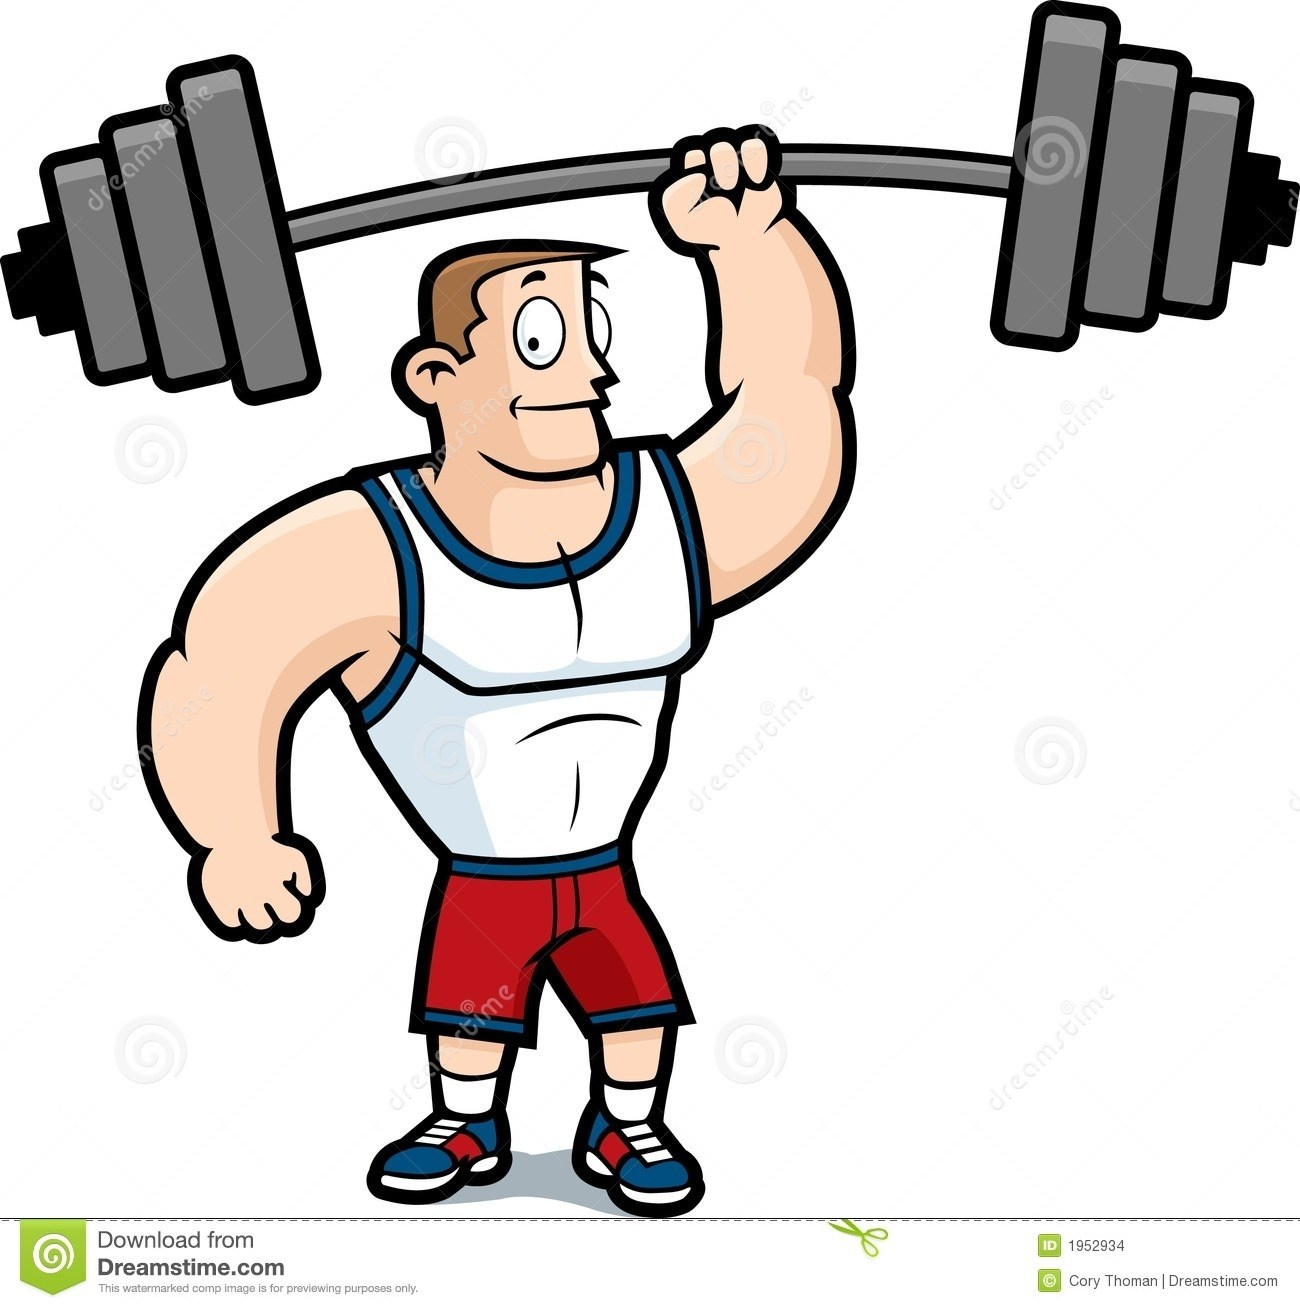 Working out clipart 6 » Clipart Portal.